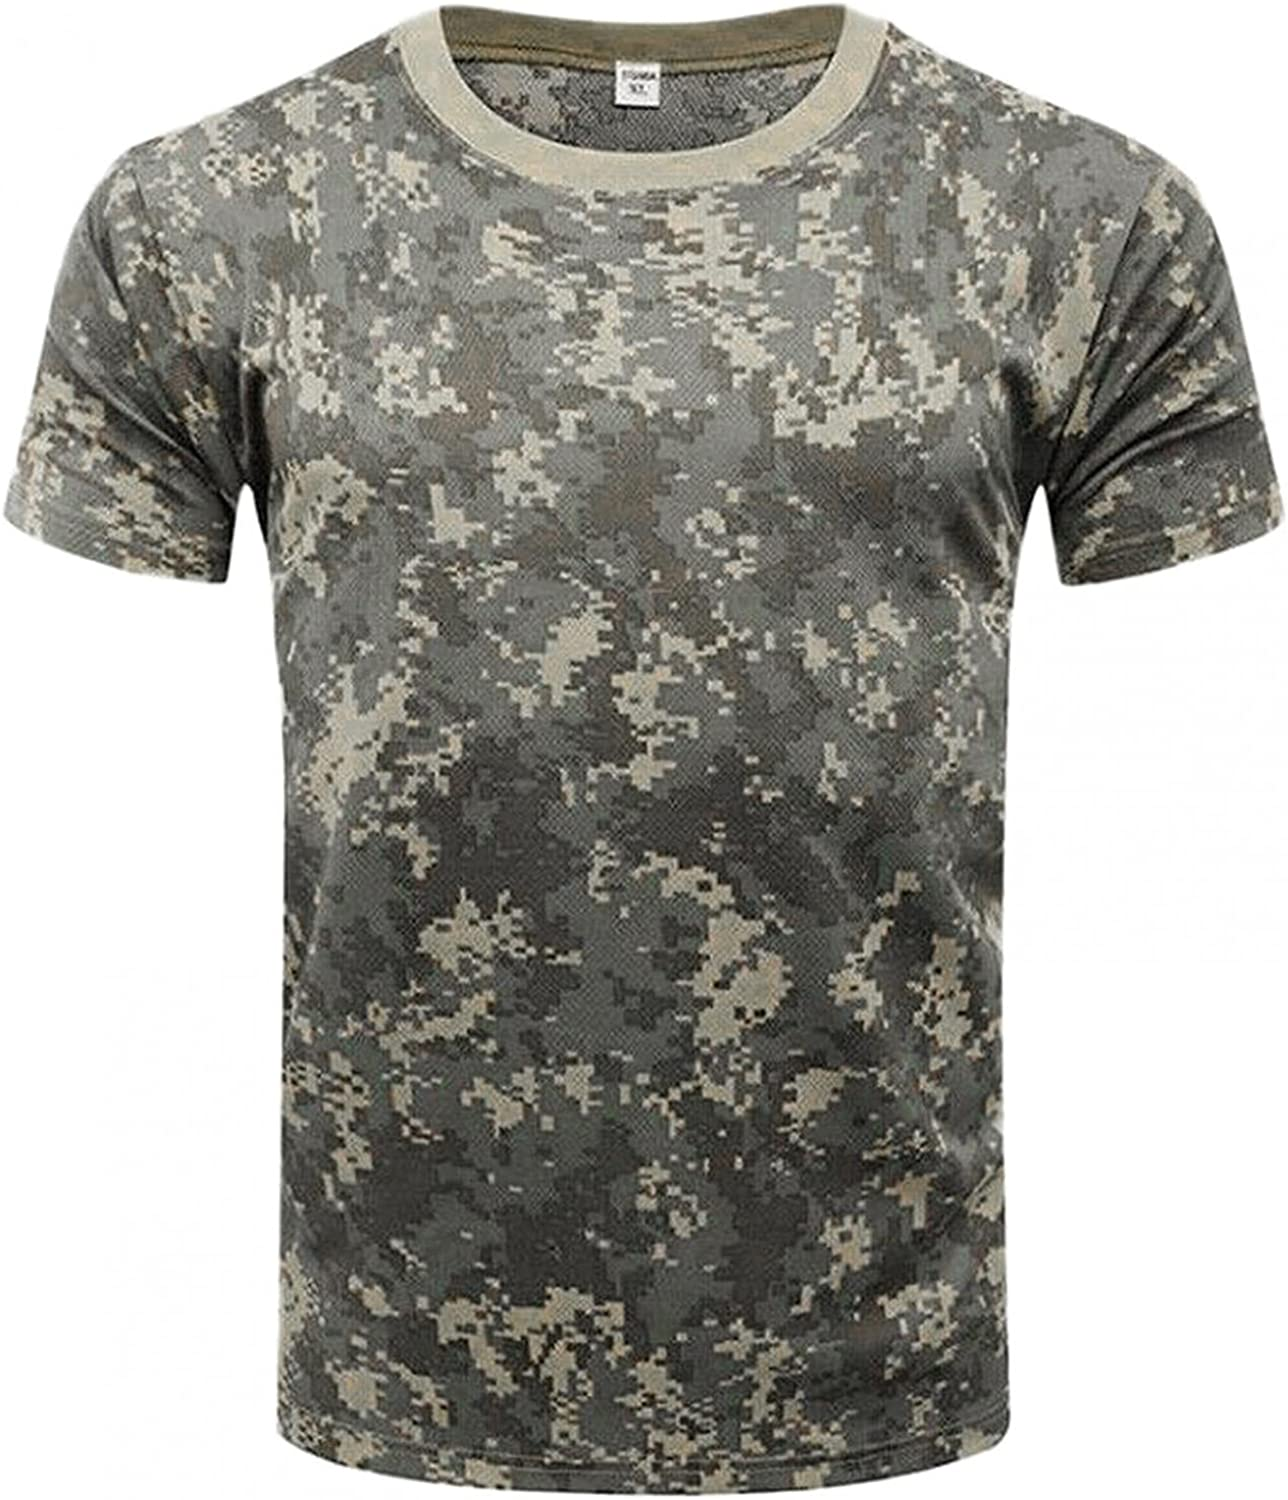 Huangse Men's Short Sleeve Tactical T-Shirt Camouflage Print Slim Fit Shirts Summer Casual Military Camo Tee Tops